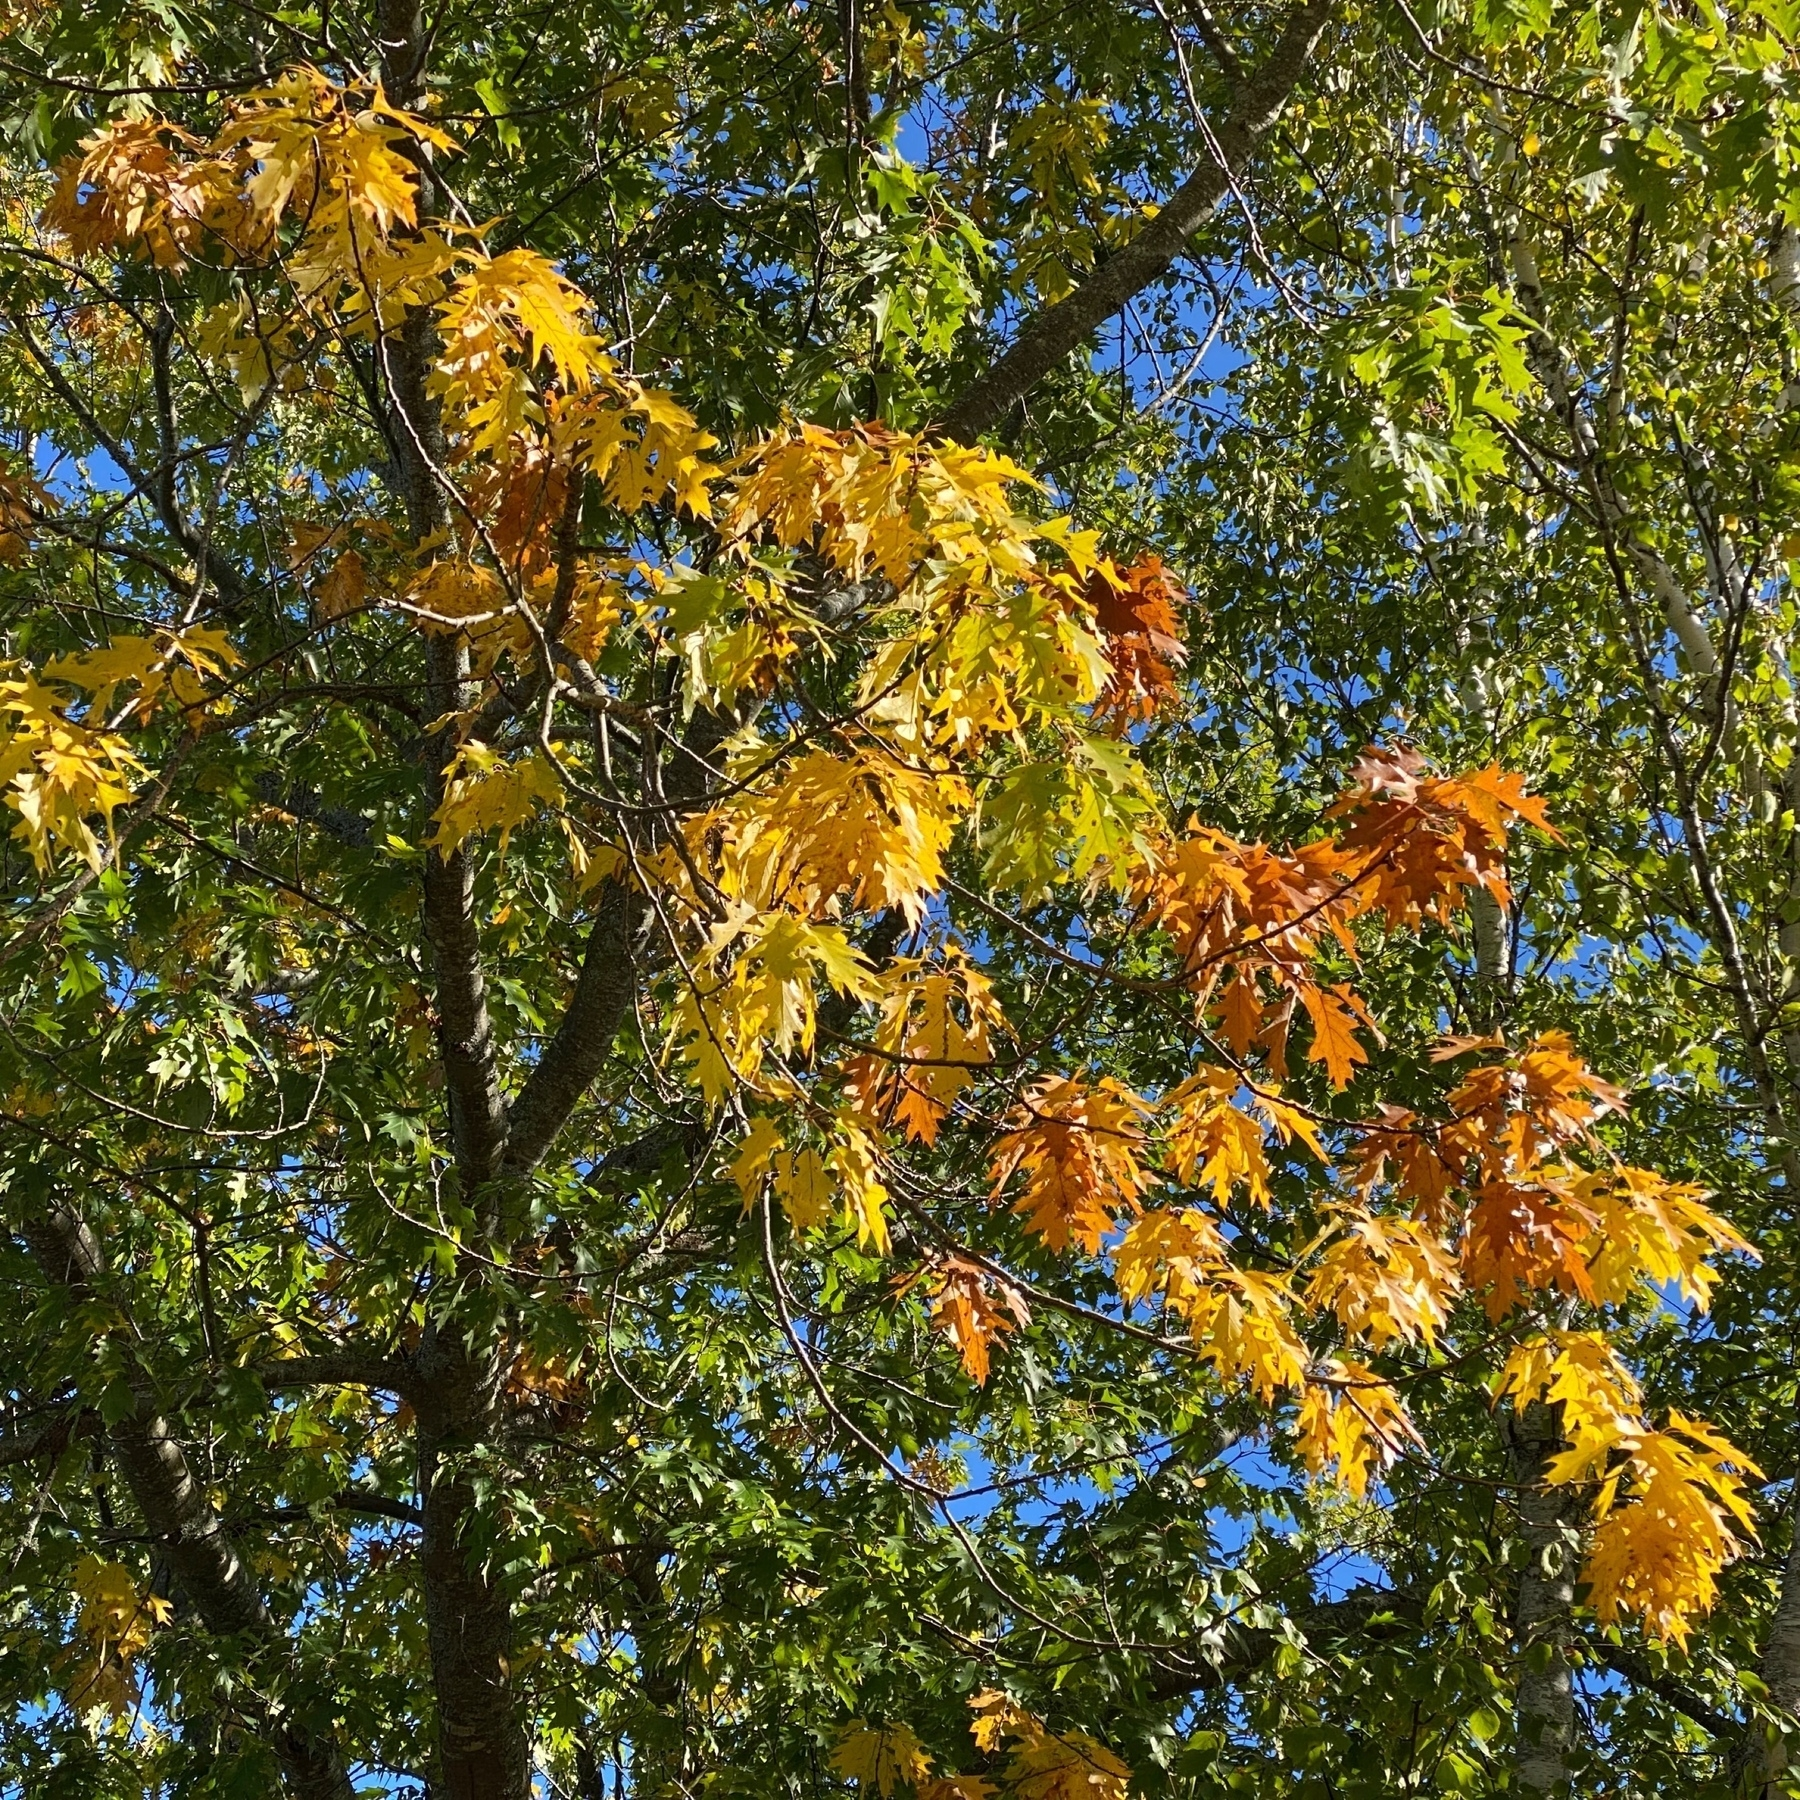 Leaves on oak tree changing colour.